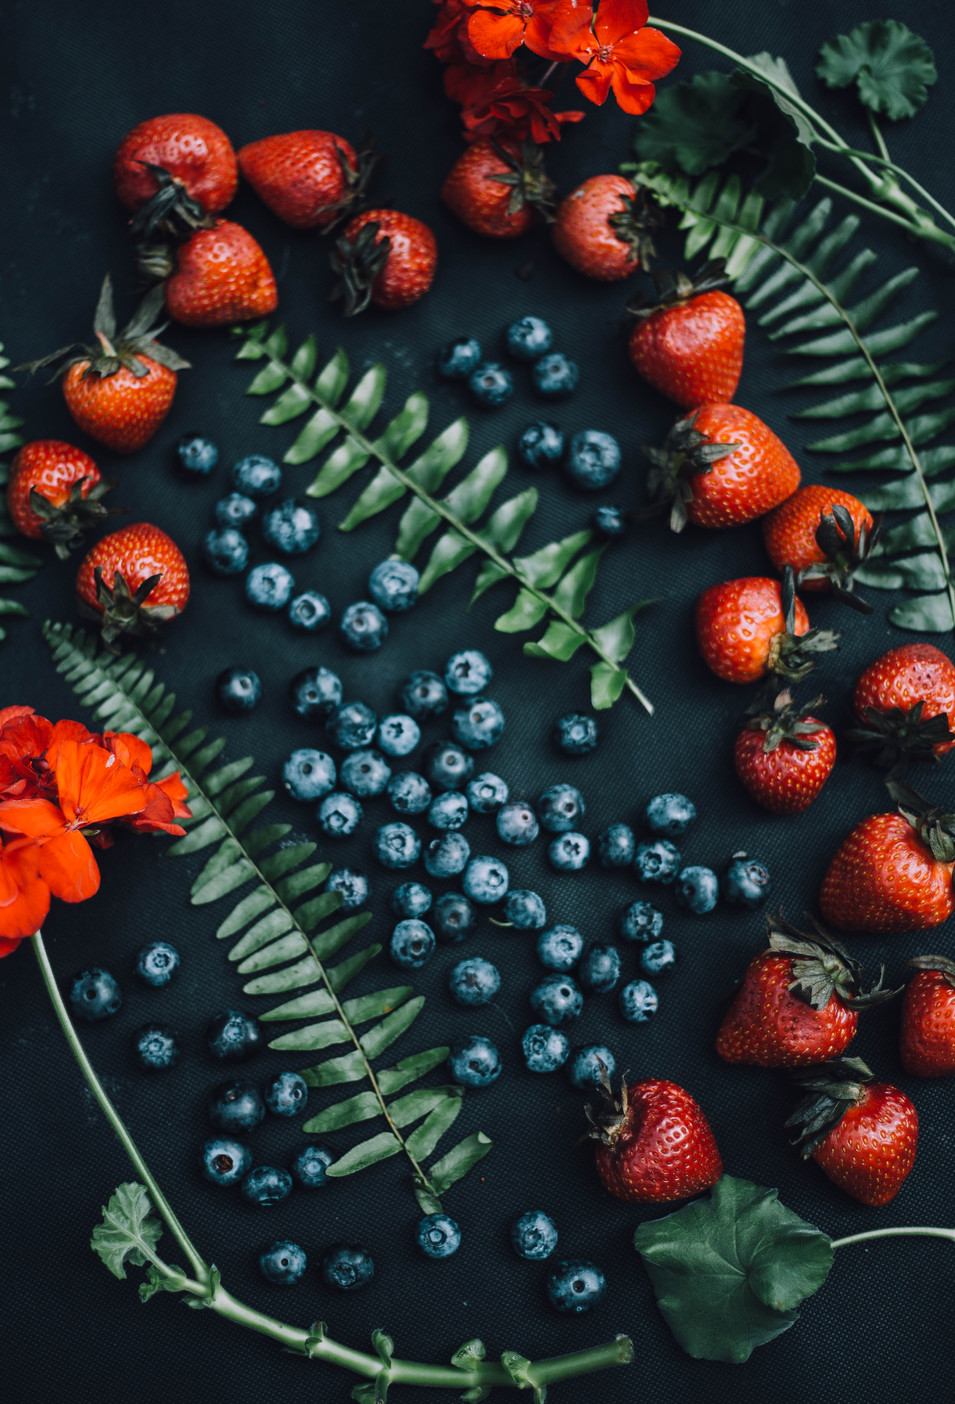 Still life food photo of berries